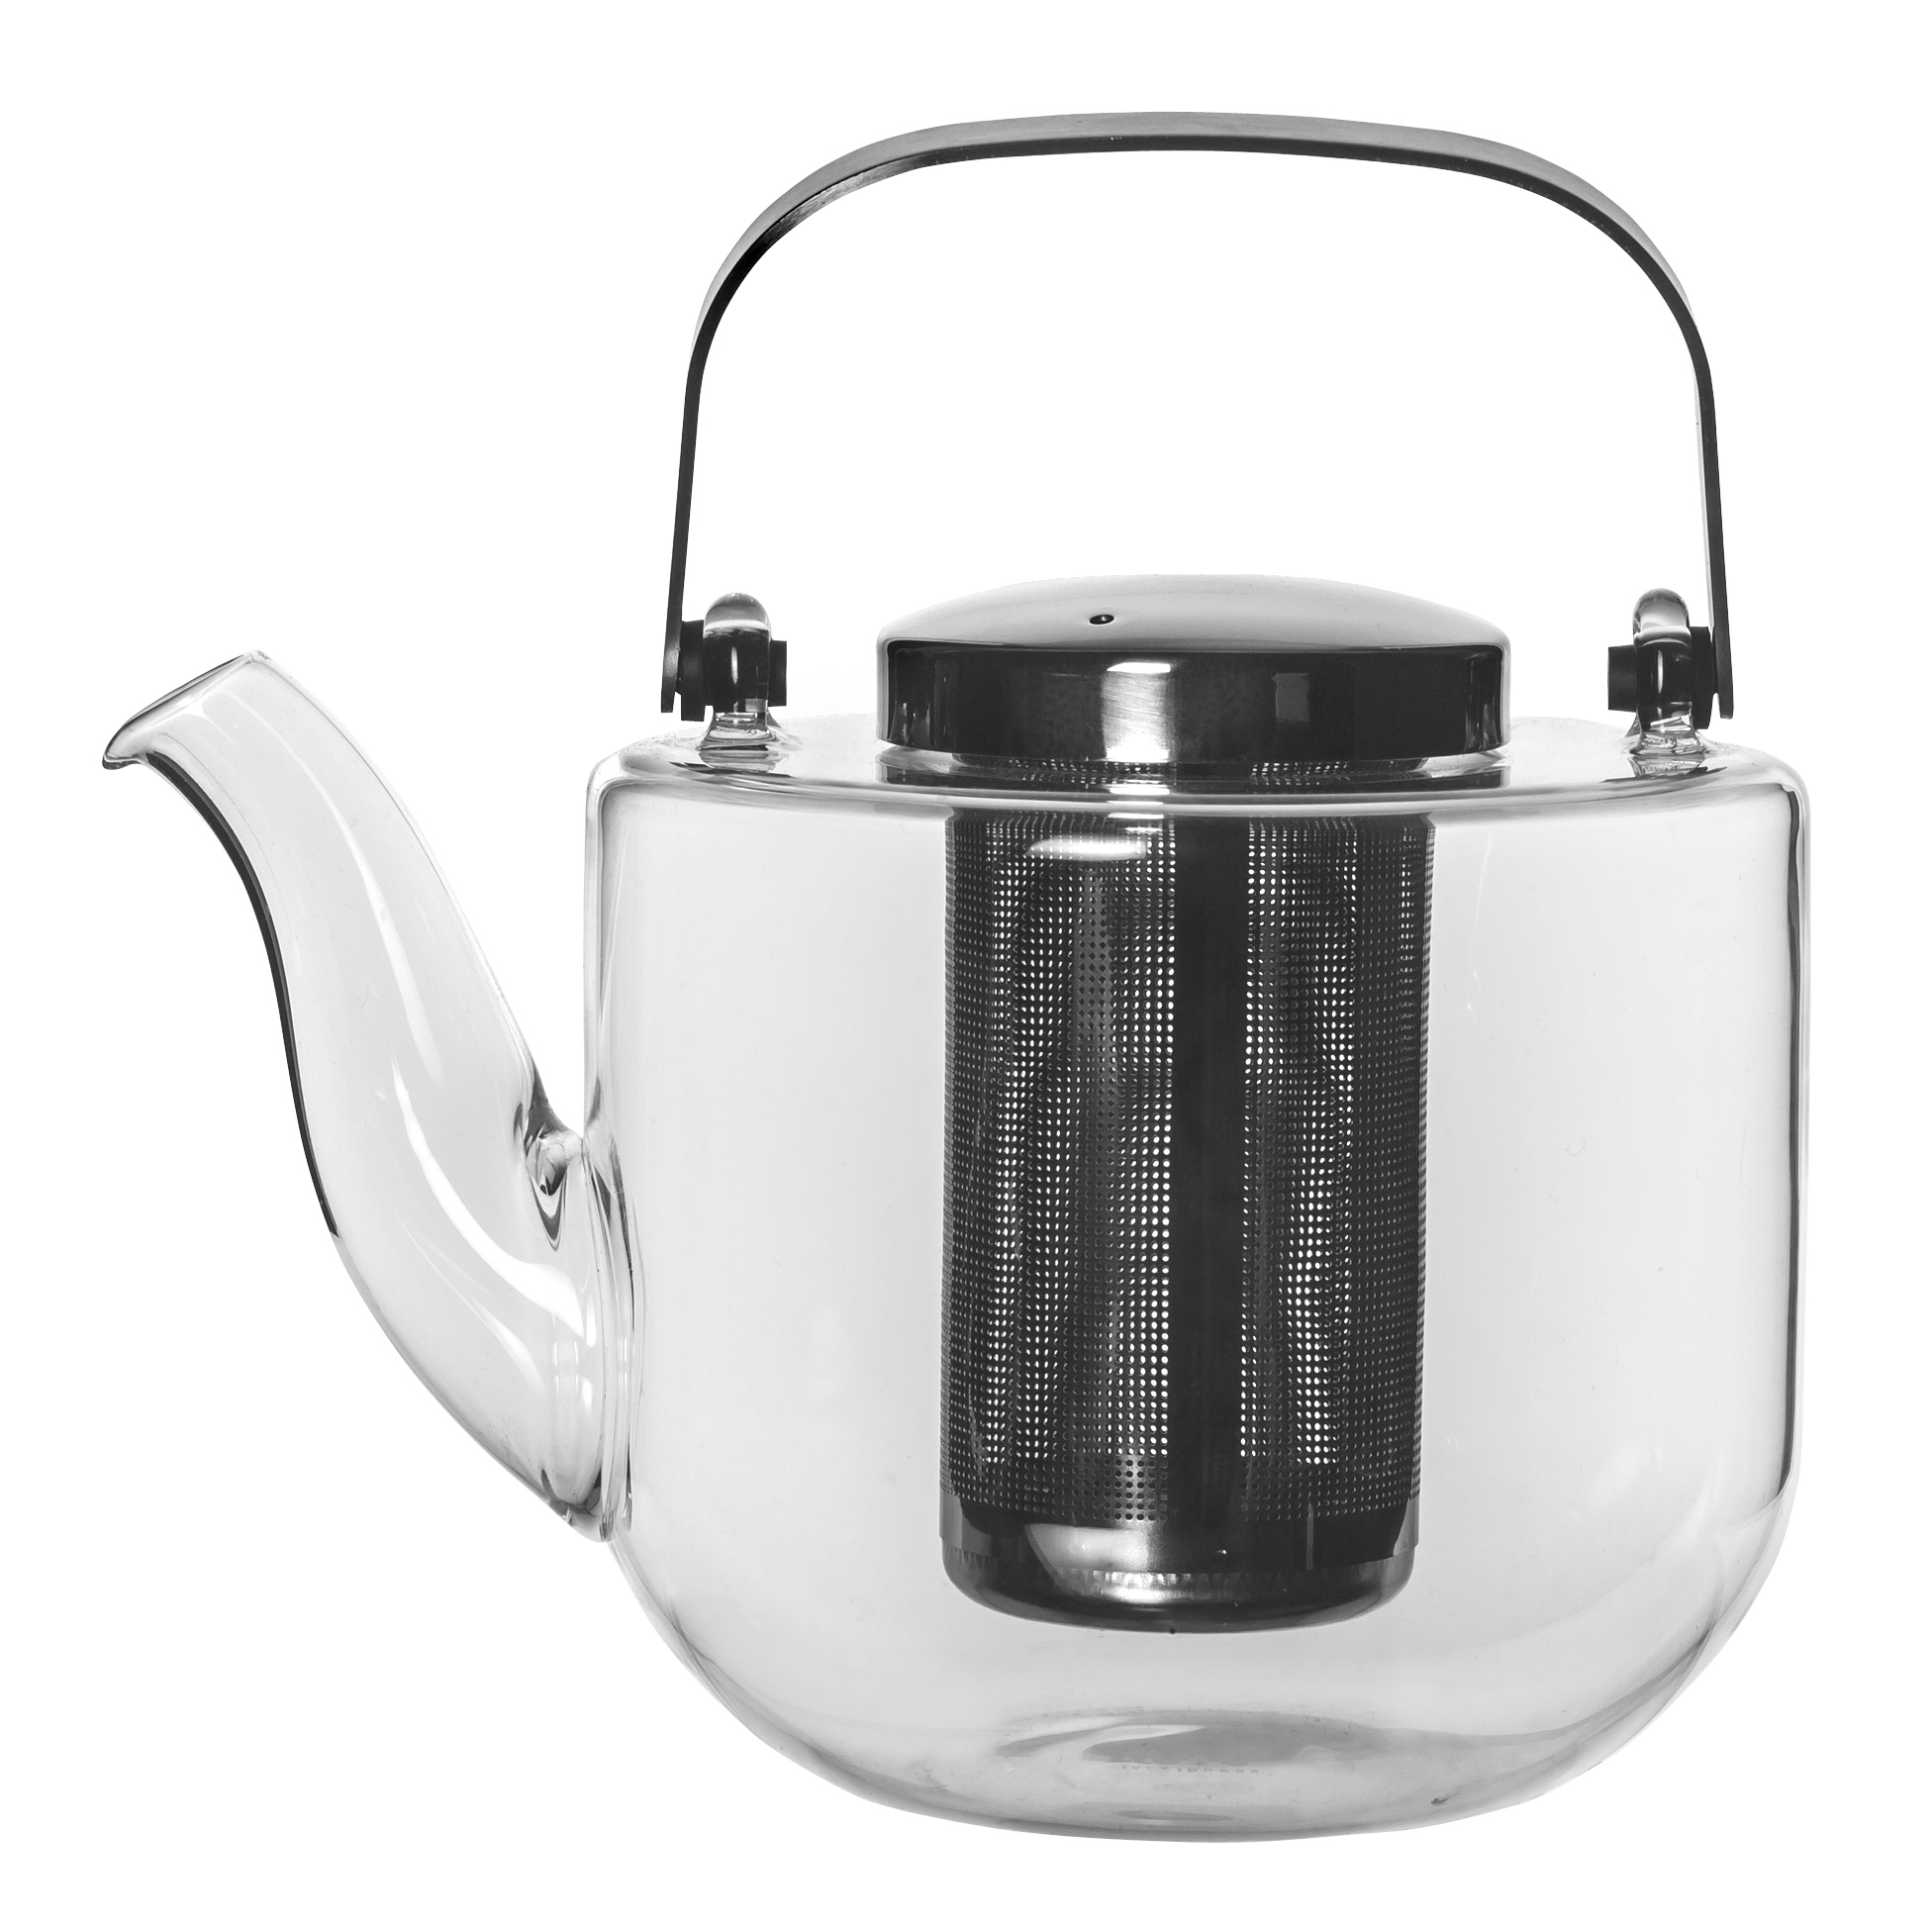 Libbey Glass VS34301 coffee pot/teapot, glass